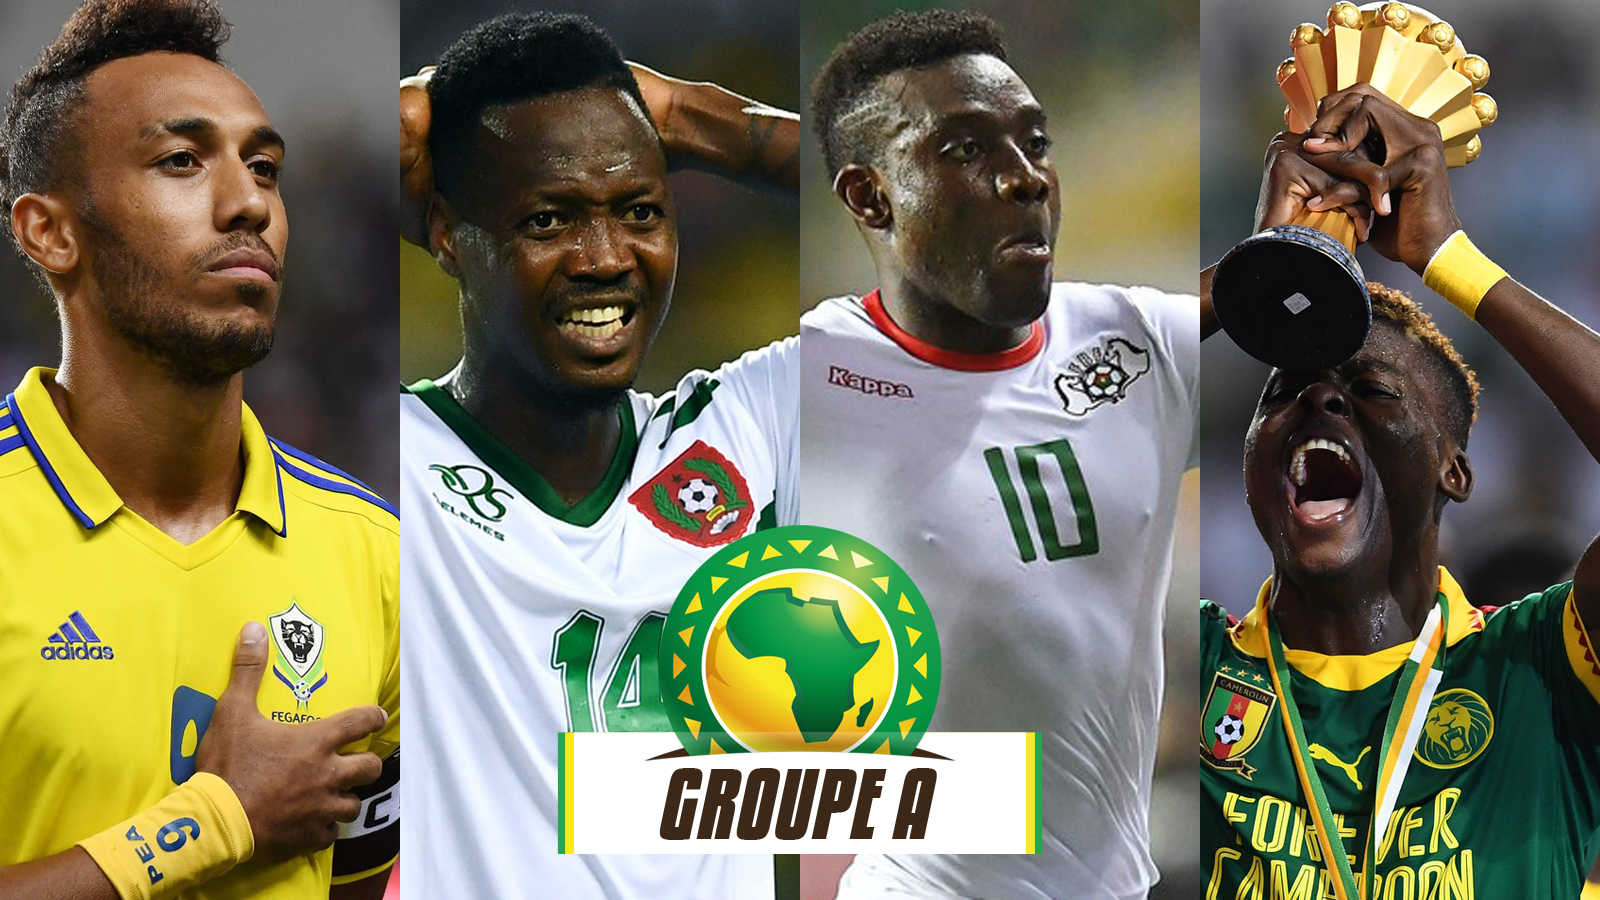 groupe-a